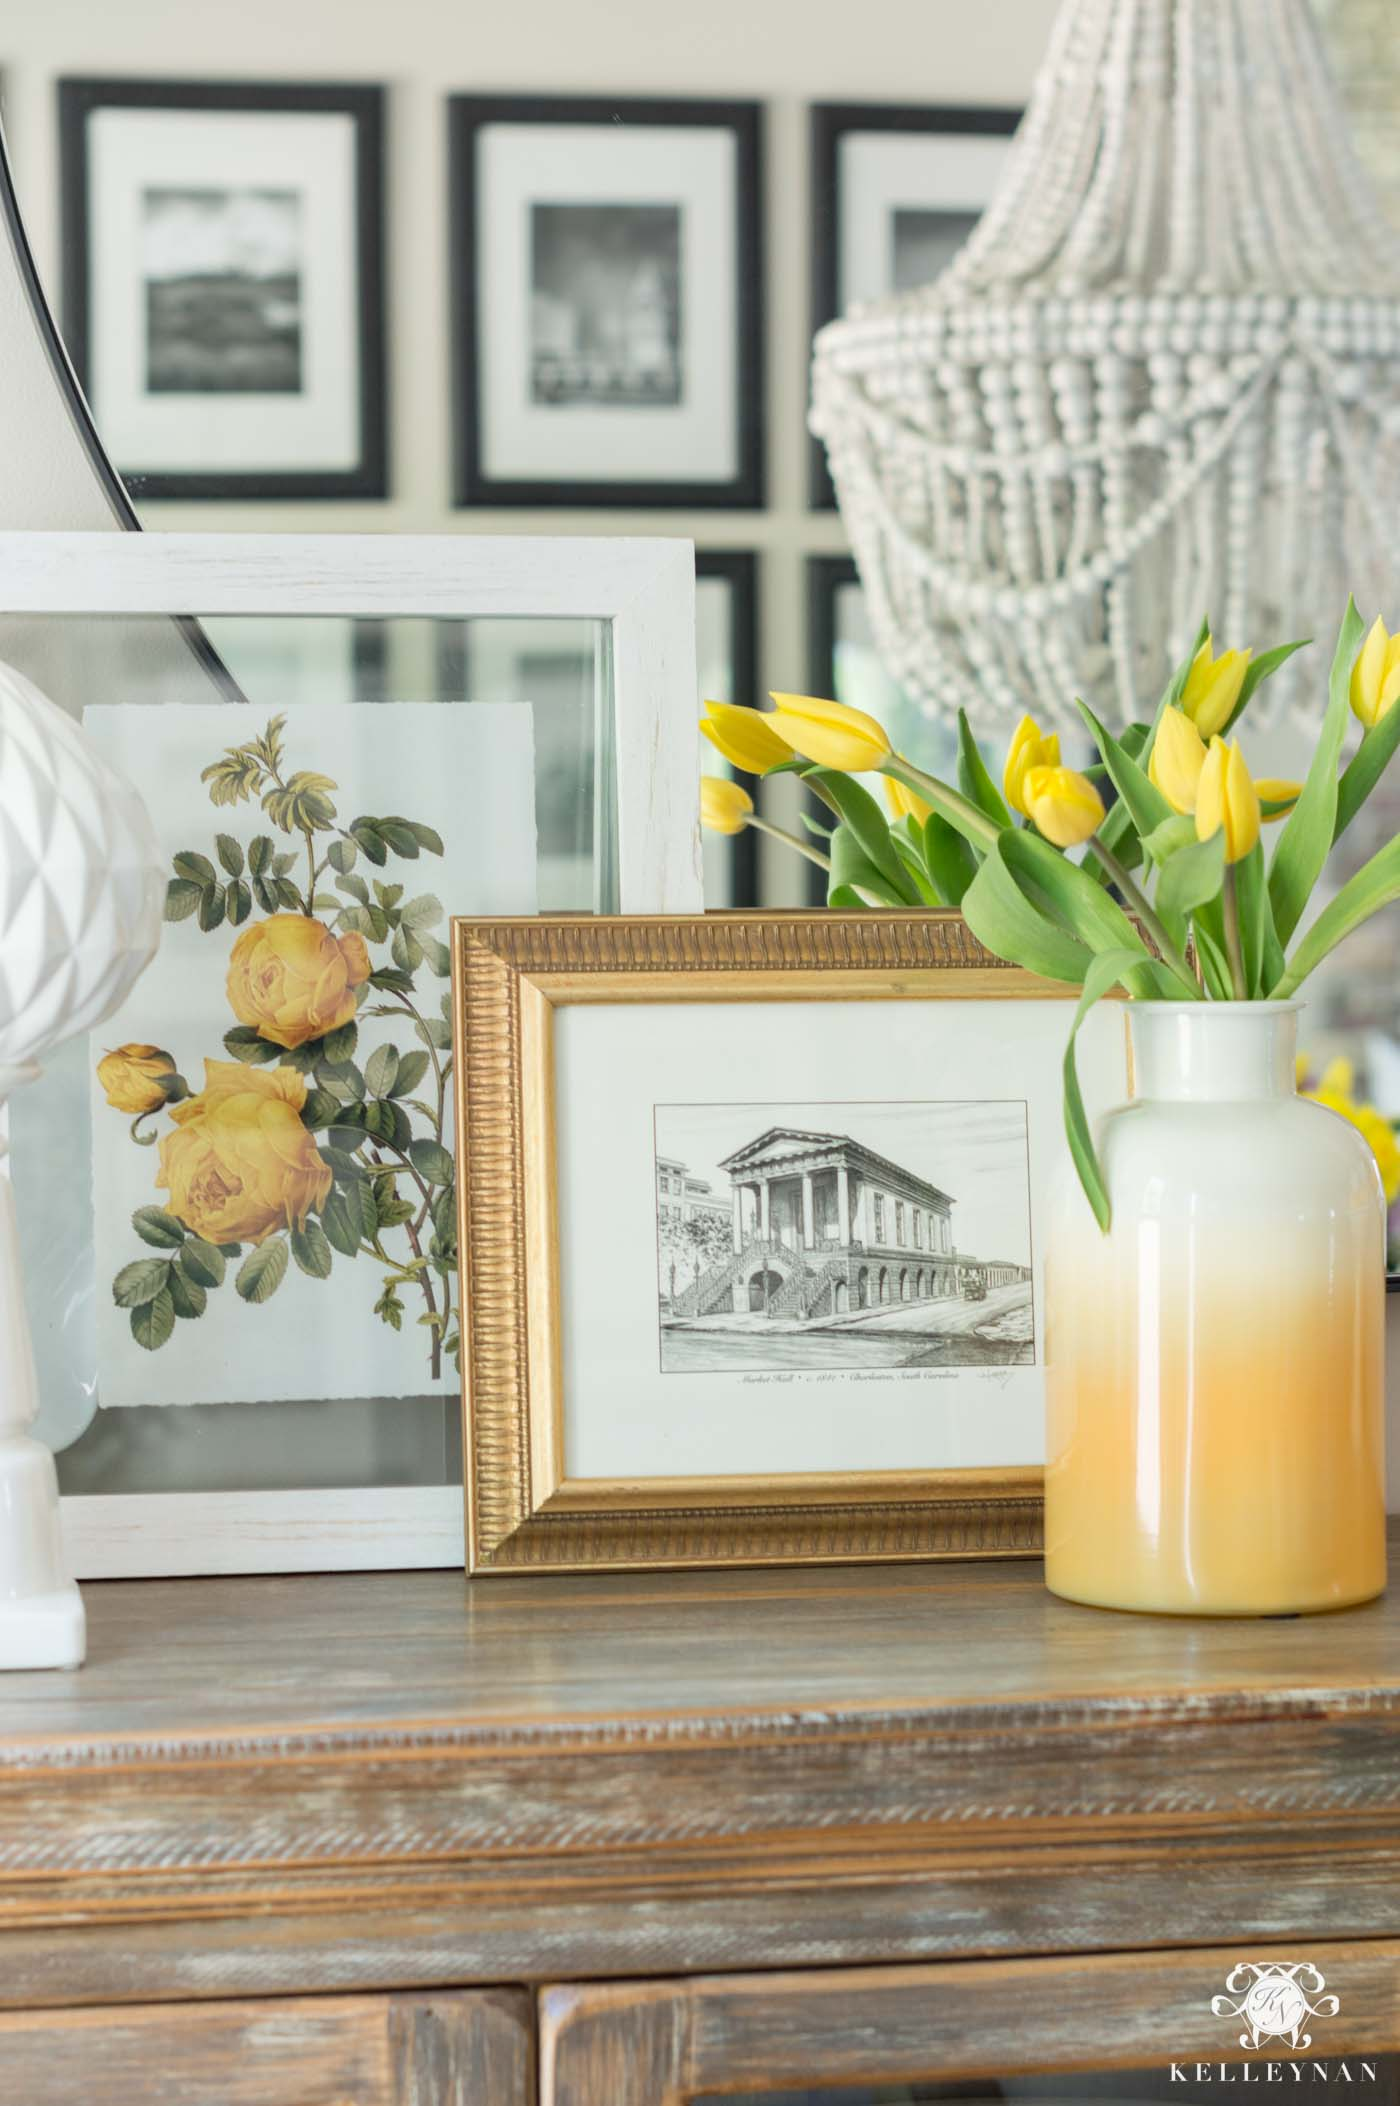 Drew Barrymore Collection Favorites- yellow art prints and vases for table styling